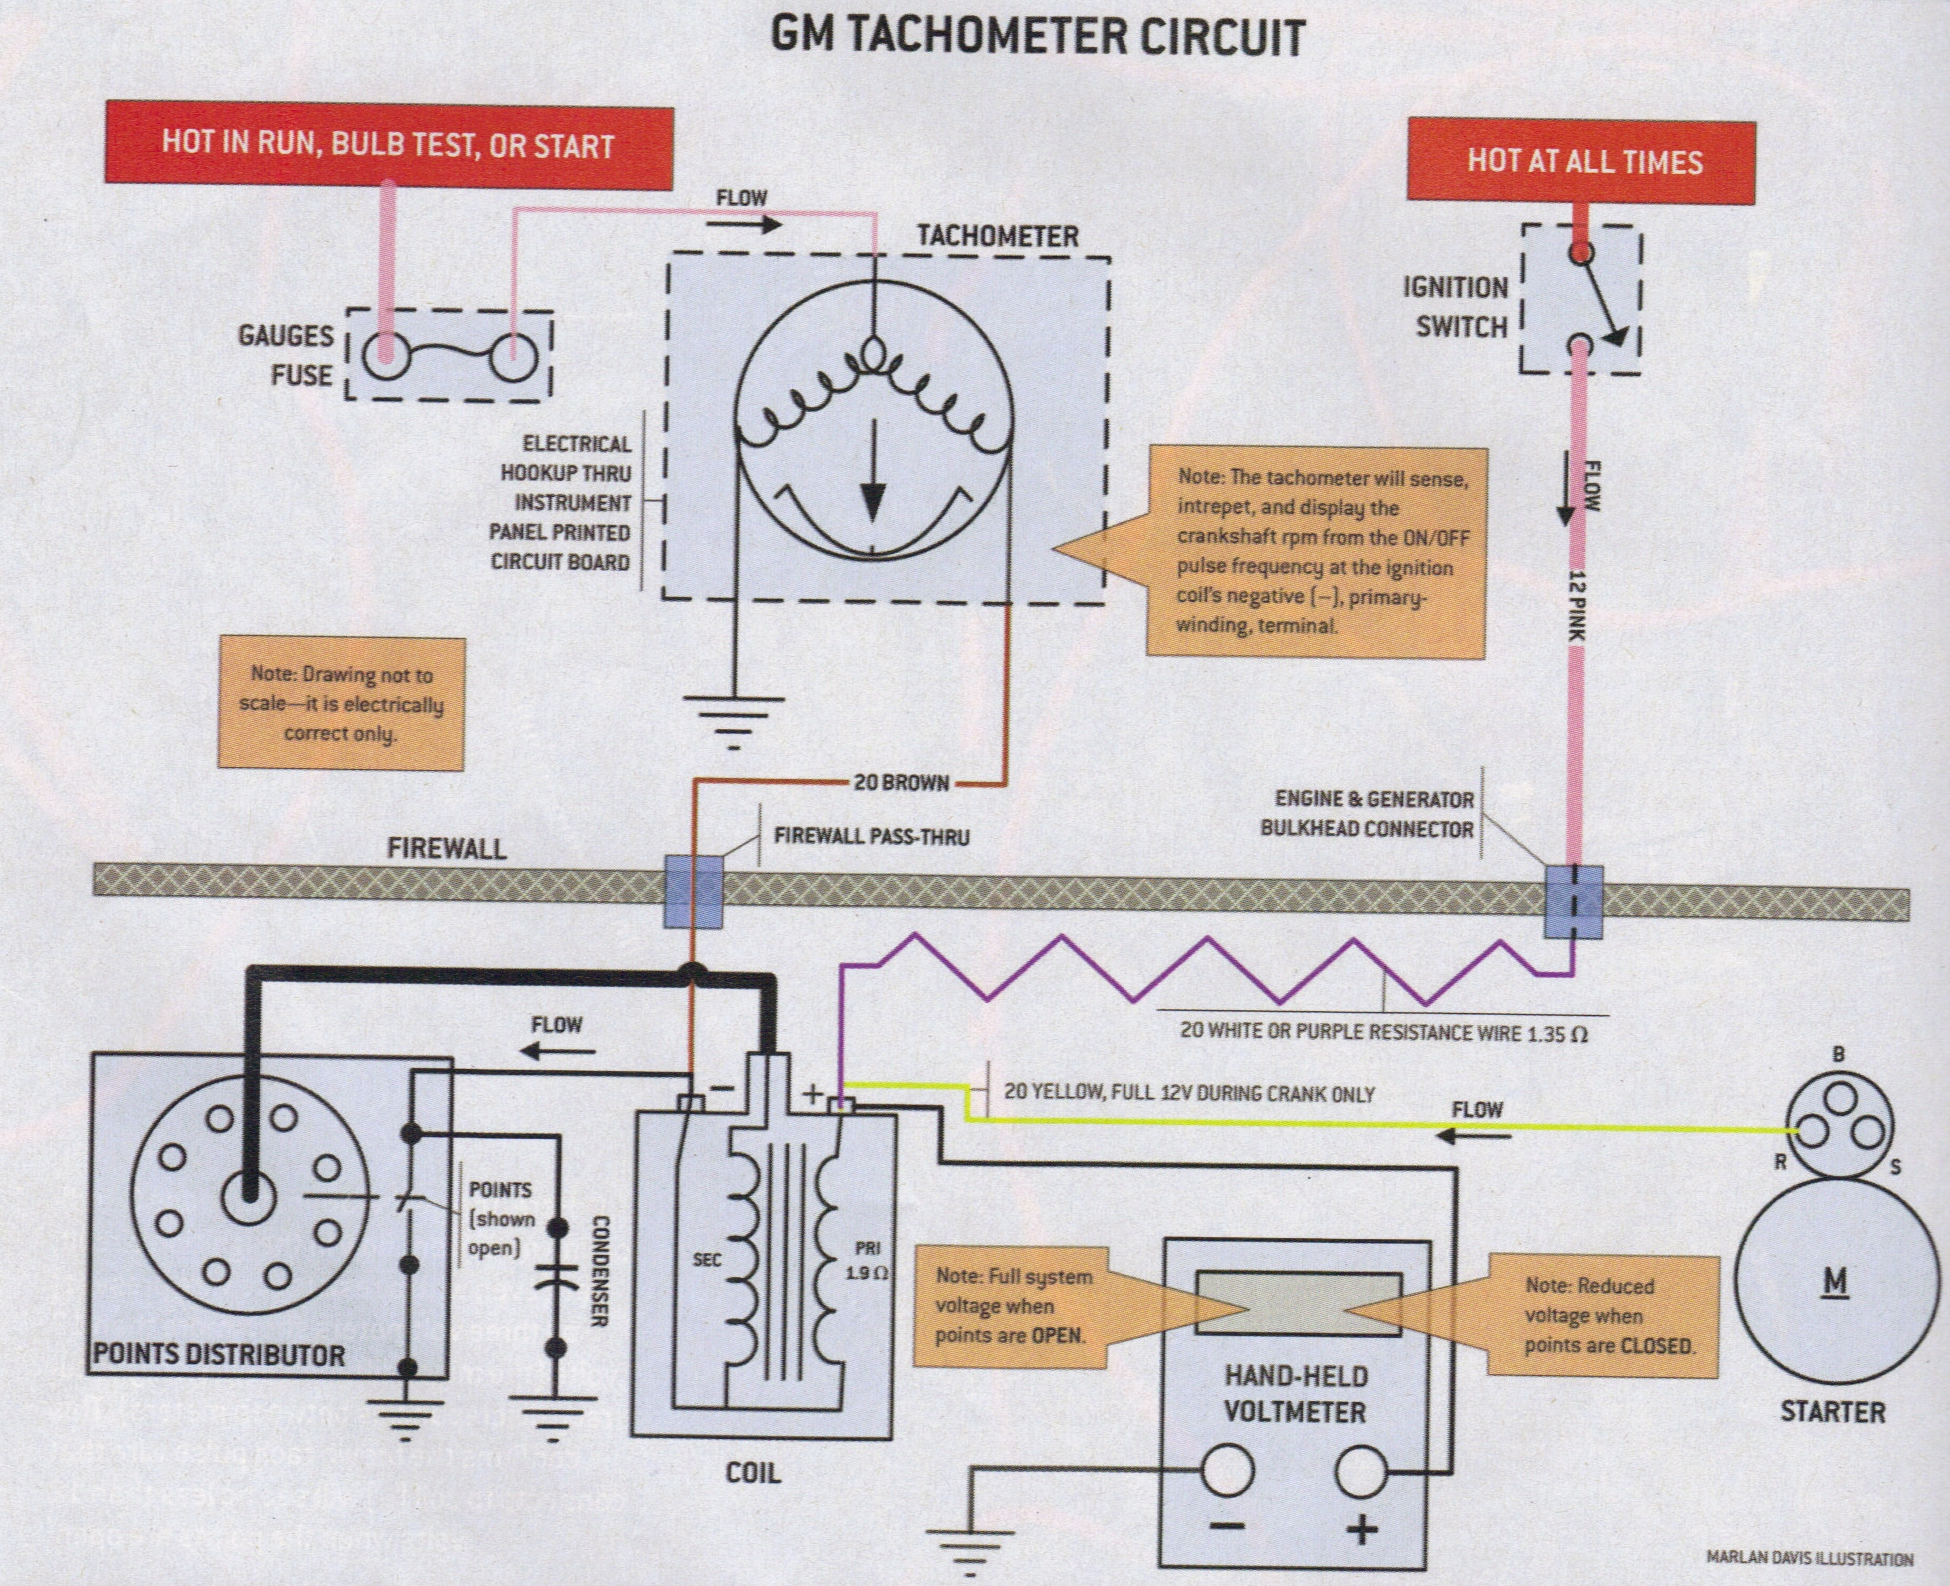 small resolution of 67 chevelle tachometer wiring diagram online wiring diagram 1969 pontiac gto wiring diagram 1969 chevelle tach wiring diagram